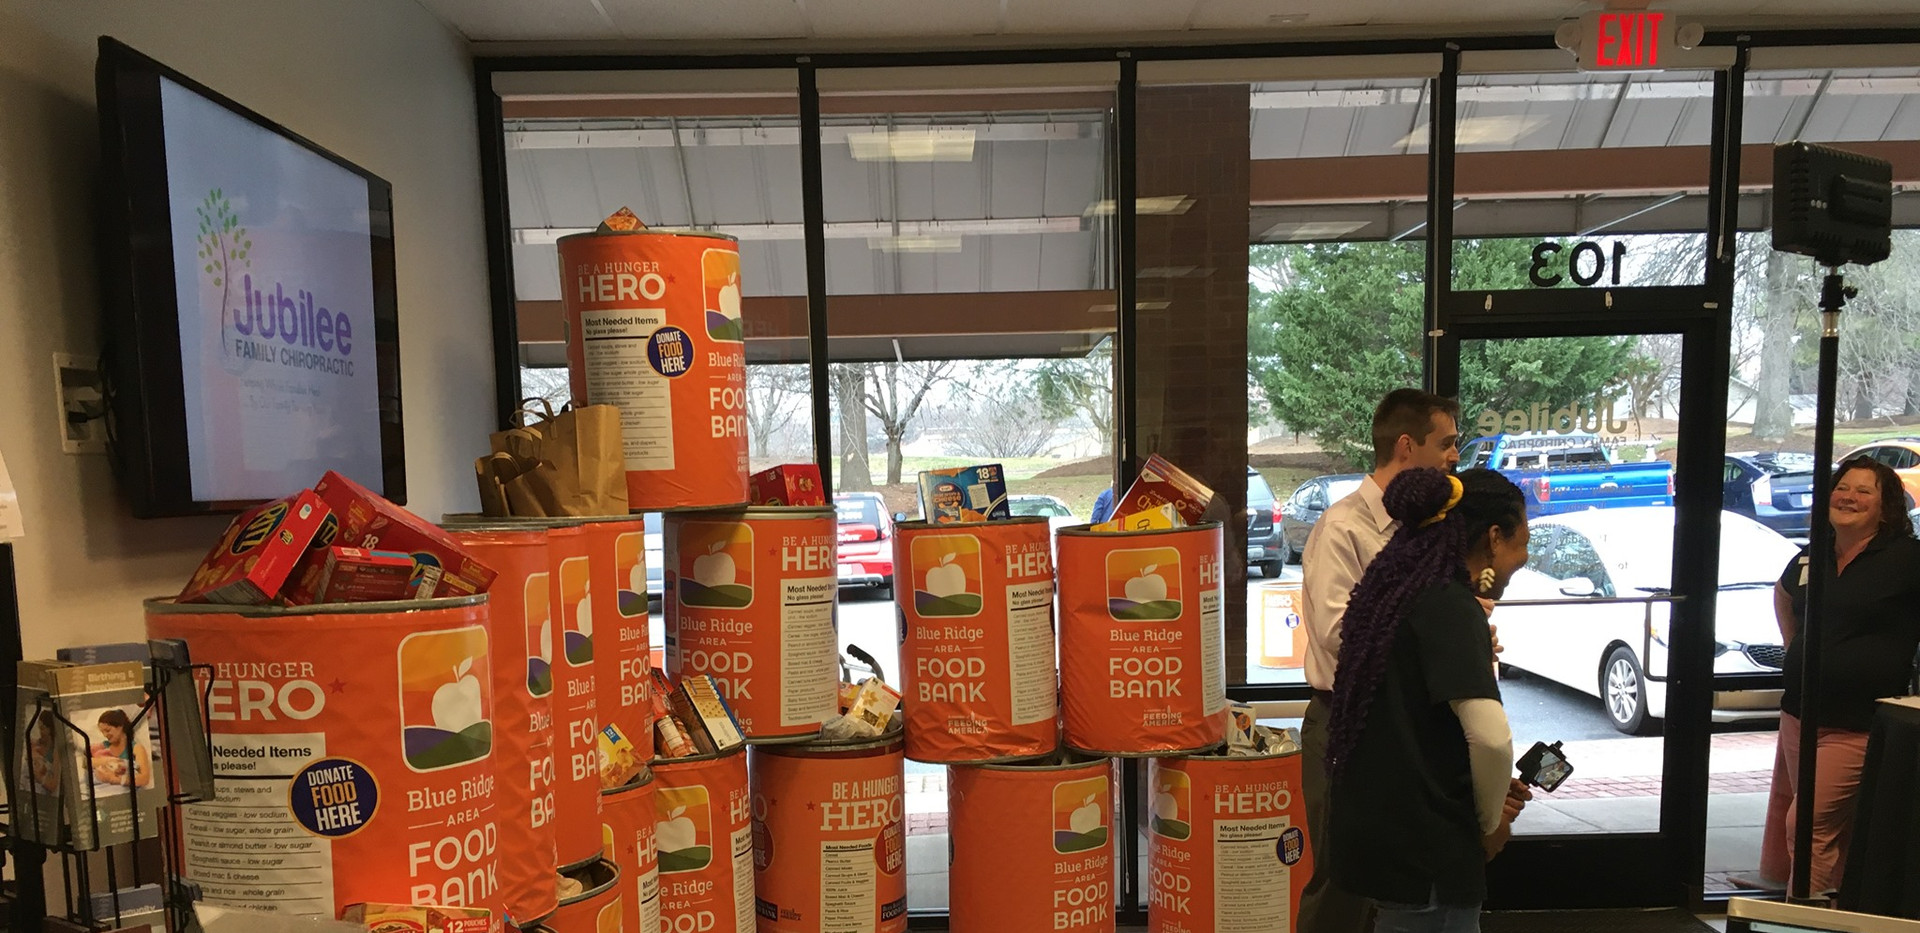 Jubilee Family Chiropractic 2020 Blue Ridge Food Drive. 047